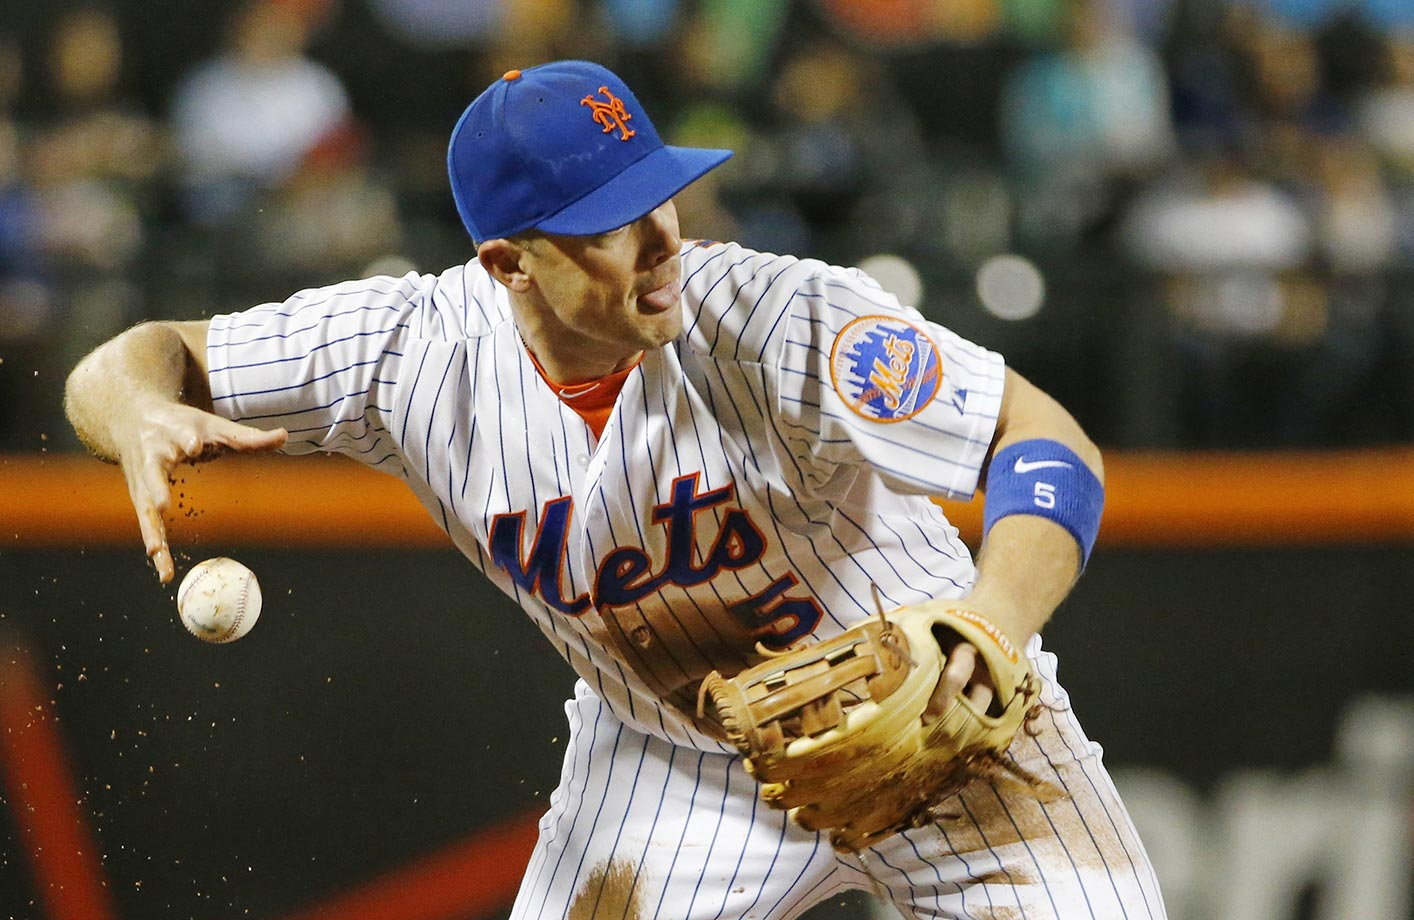 David Wright of the Mets loses his grip as he tries to throw to first against the Braves.